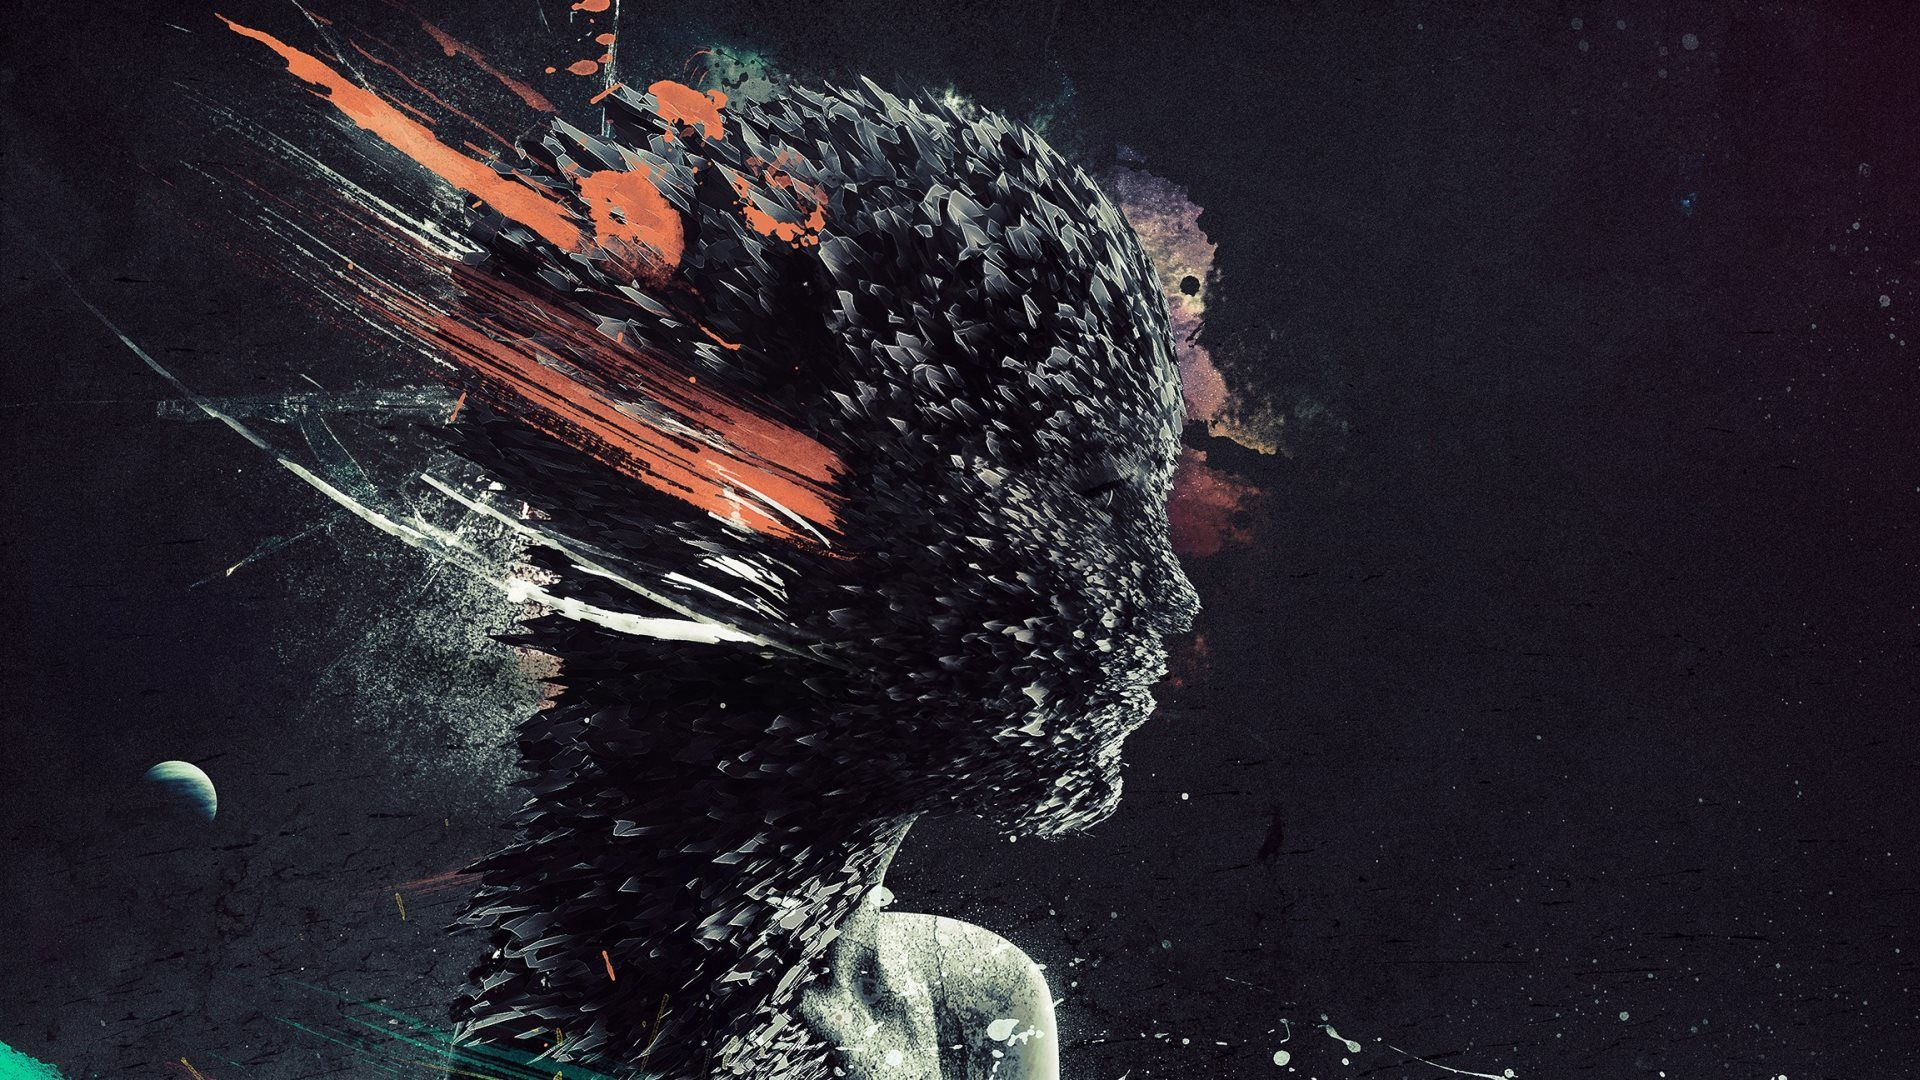 Abstract 2K: Faction Wallpapers :: HD Wallpapers   AP2D in 2019   Pinterest   Artistic wallpaper ...